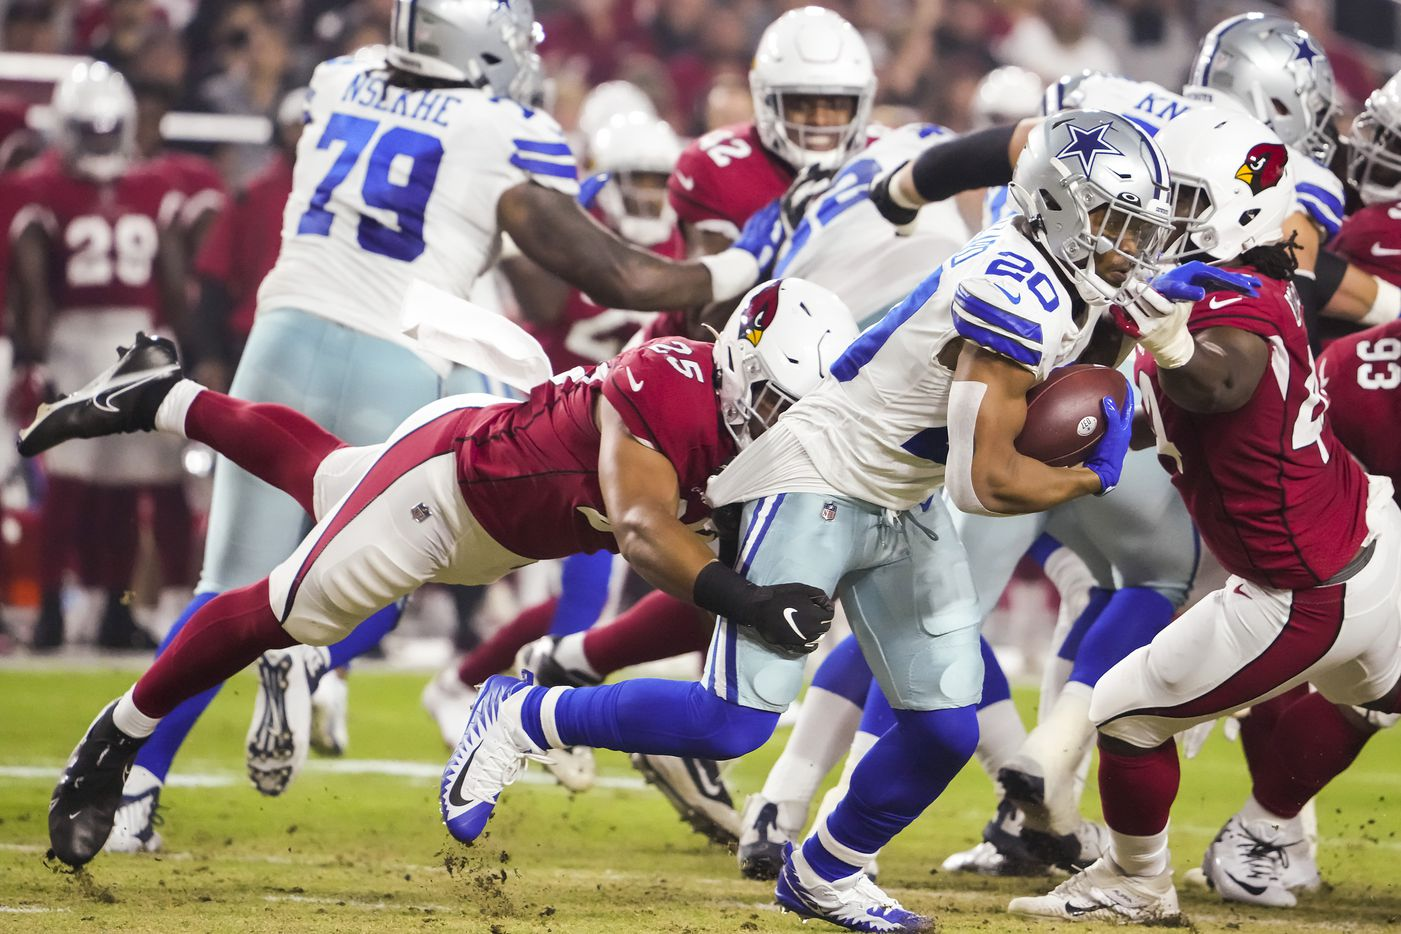 Dallas Cowboys running back Tony Pollard (20) is brought down by Arizona Cardinals linebacker Zaven Collins (25) behind the line of scrimmage during the first quarter of an NFL football game at State Farm Stadium on Friday, Aug. 13, 2021, in Glendale, Ariz.